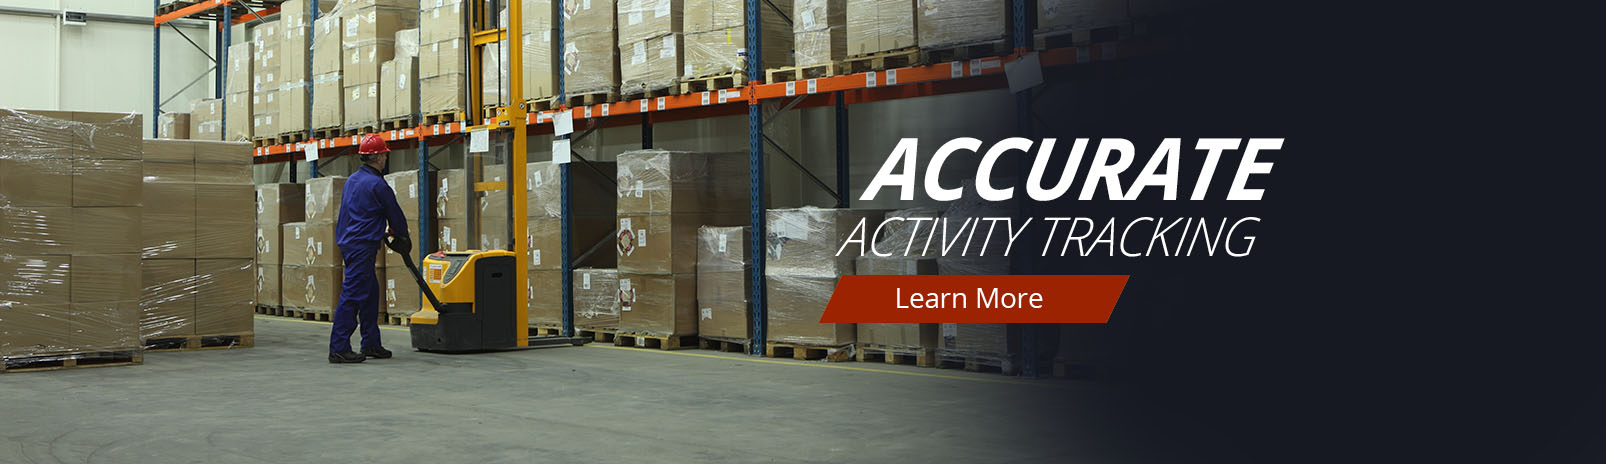 Accurate Activity Tracking